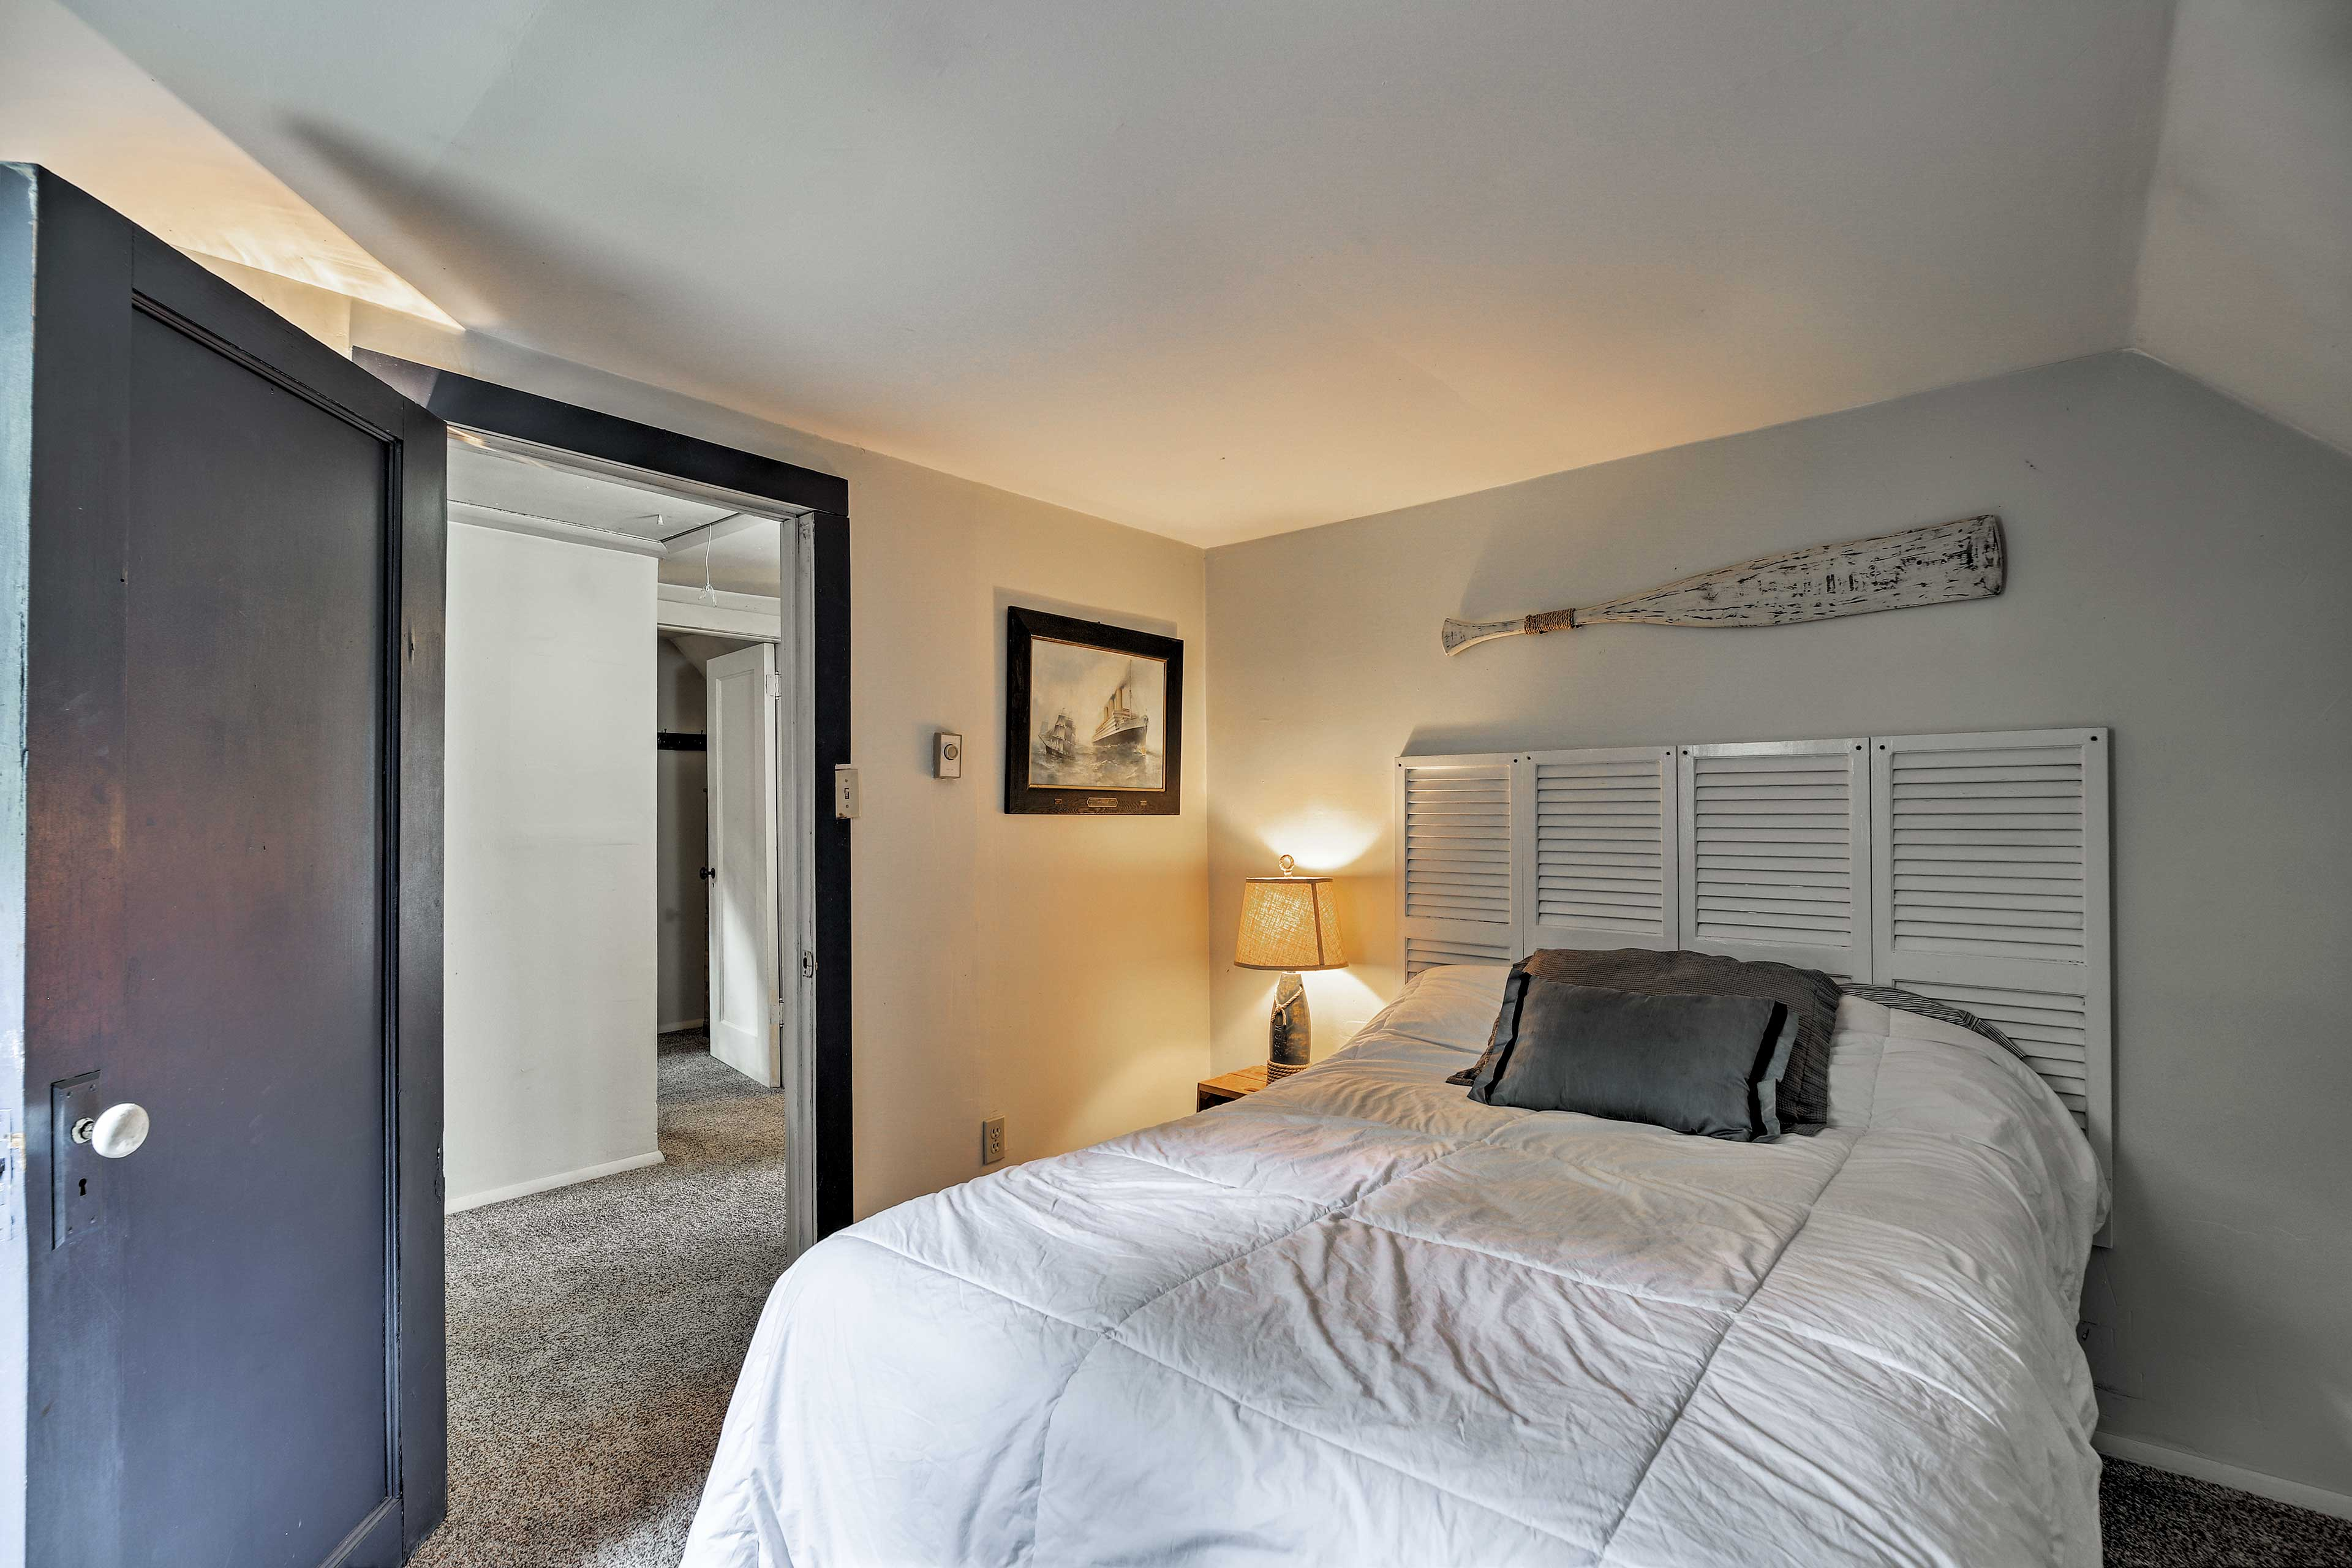 You'll find a full-sized bed in this room.